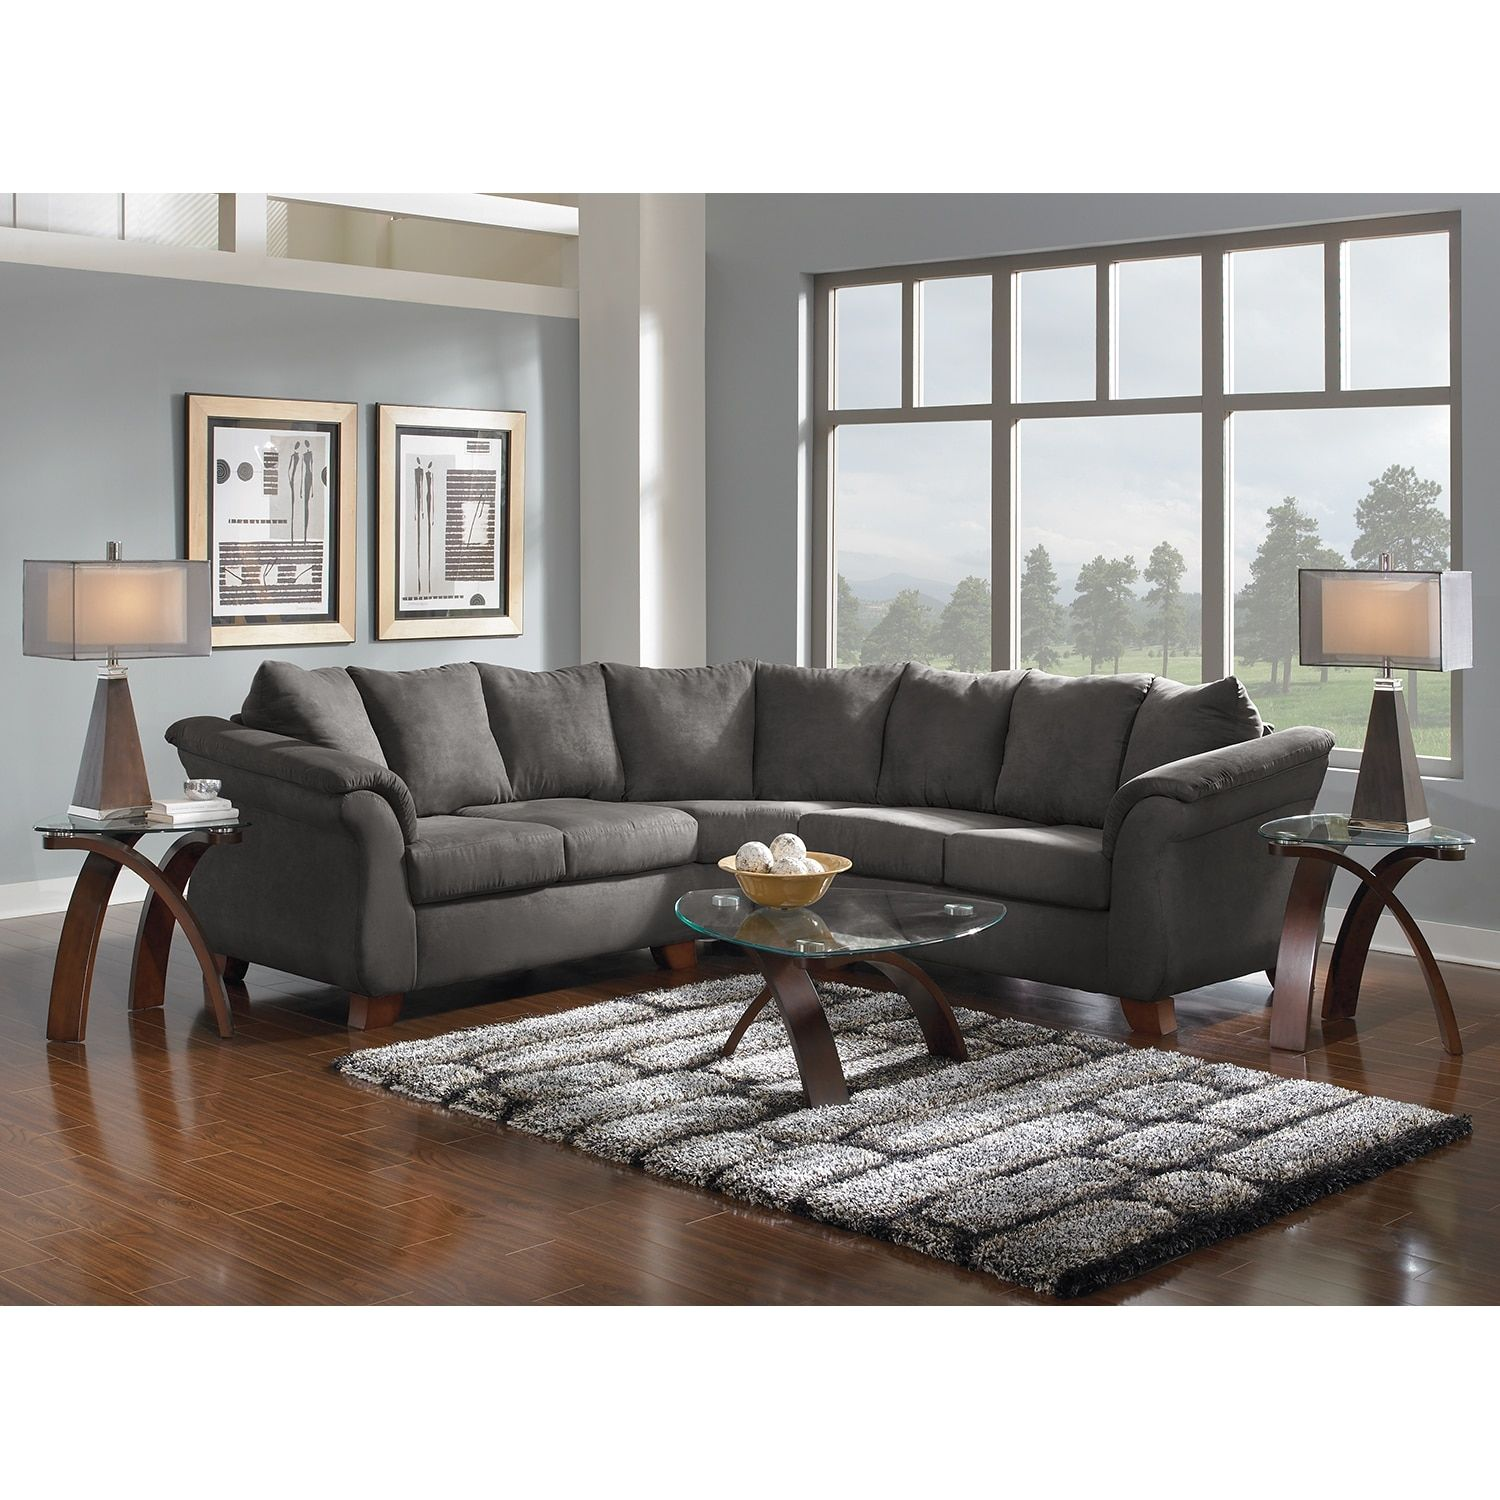 Adrian 2 Piece Sectional City Living Room Living Room Leather